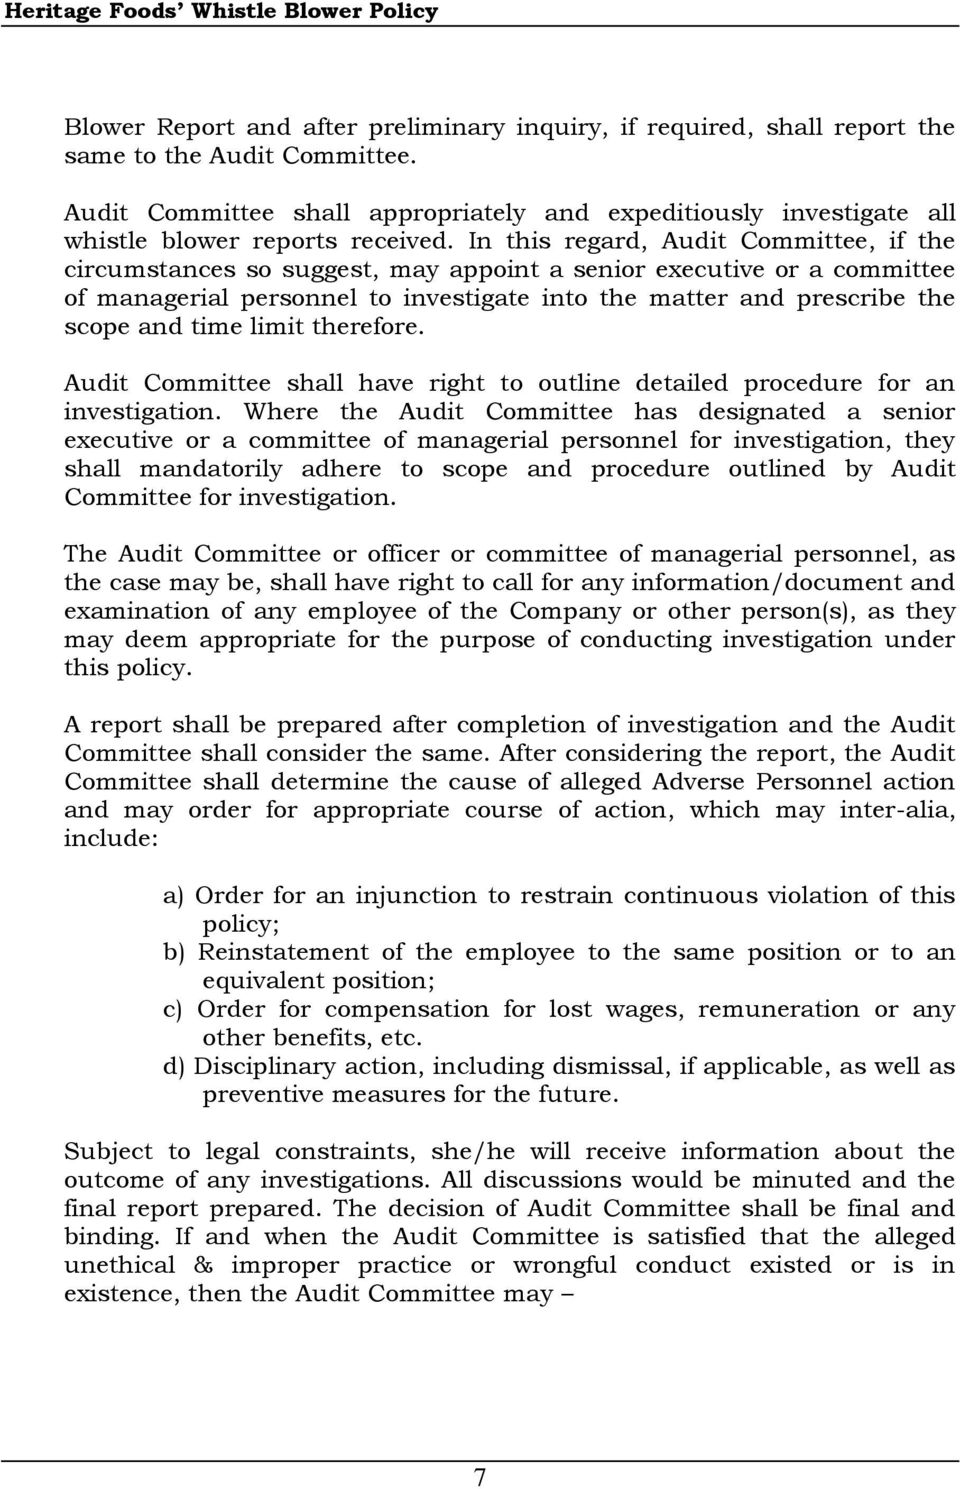 In this regard, Audit Committee, if the circumstances so suggest, may appoint a senior executive or a committee of managerial personnel to investigate into the matter and prescribe the scope and time